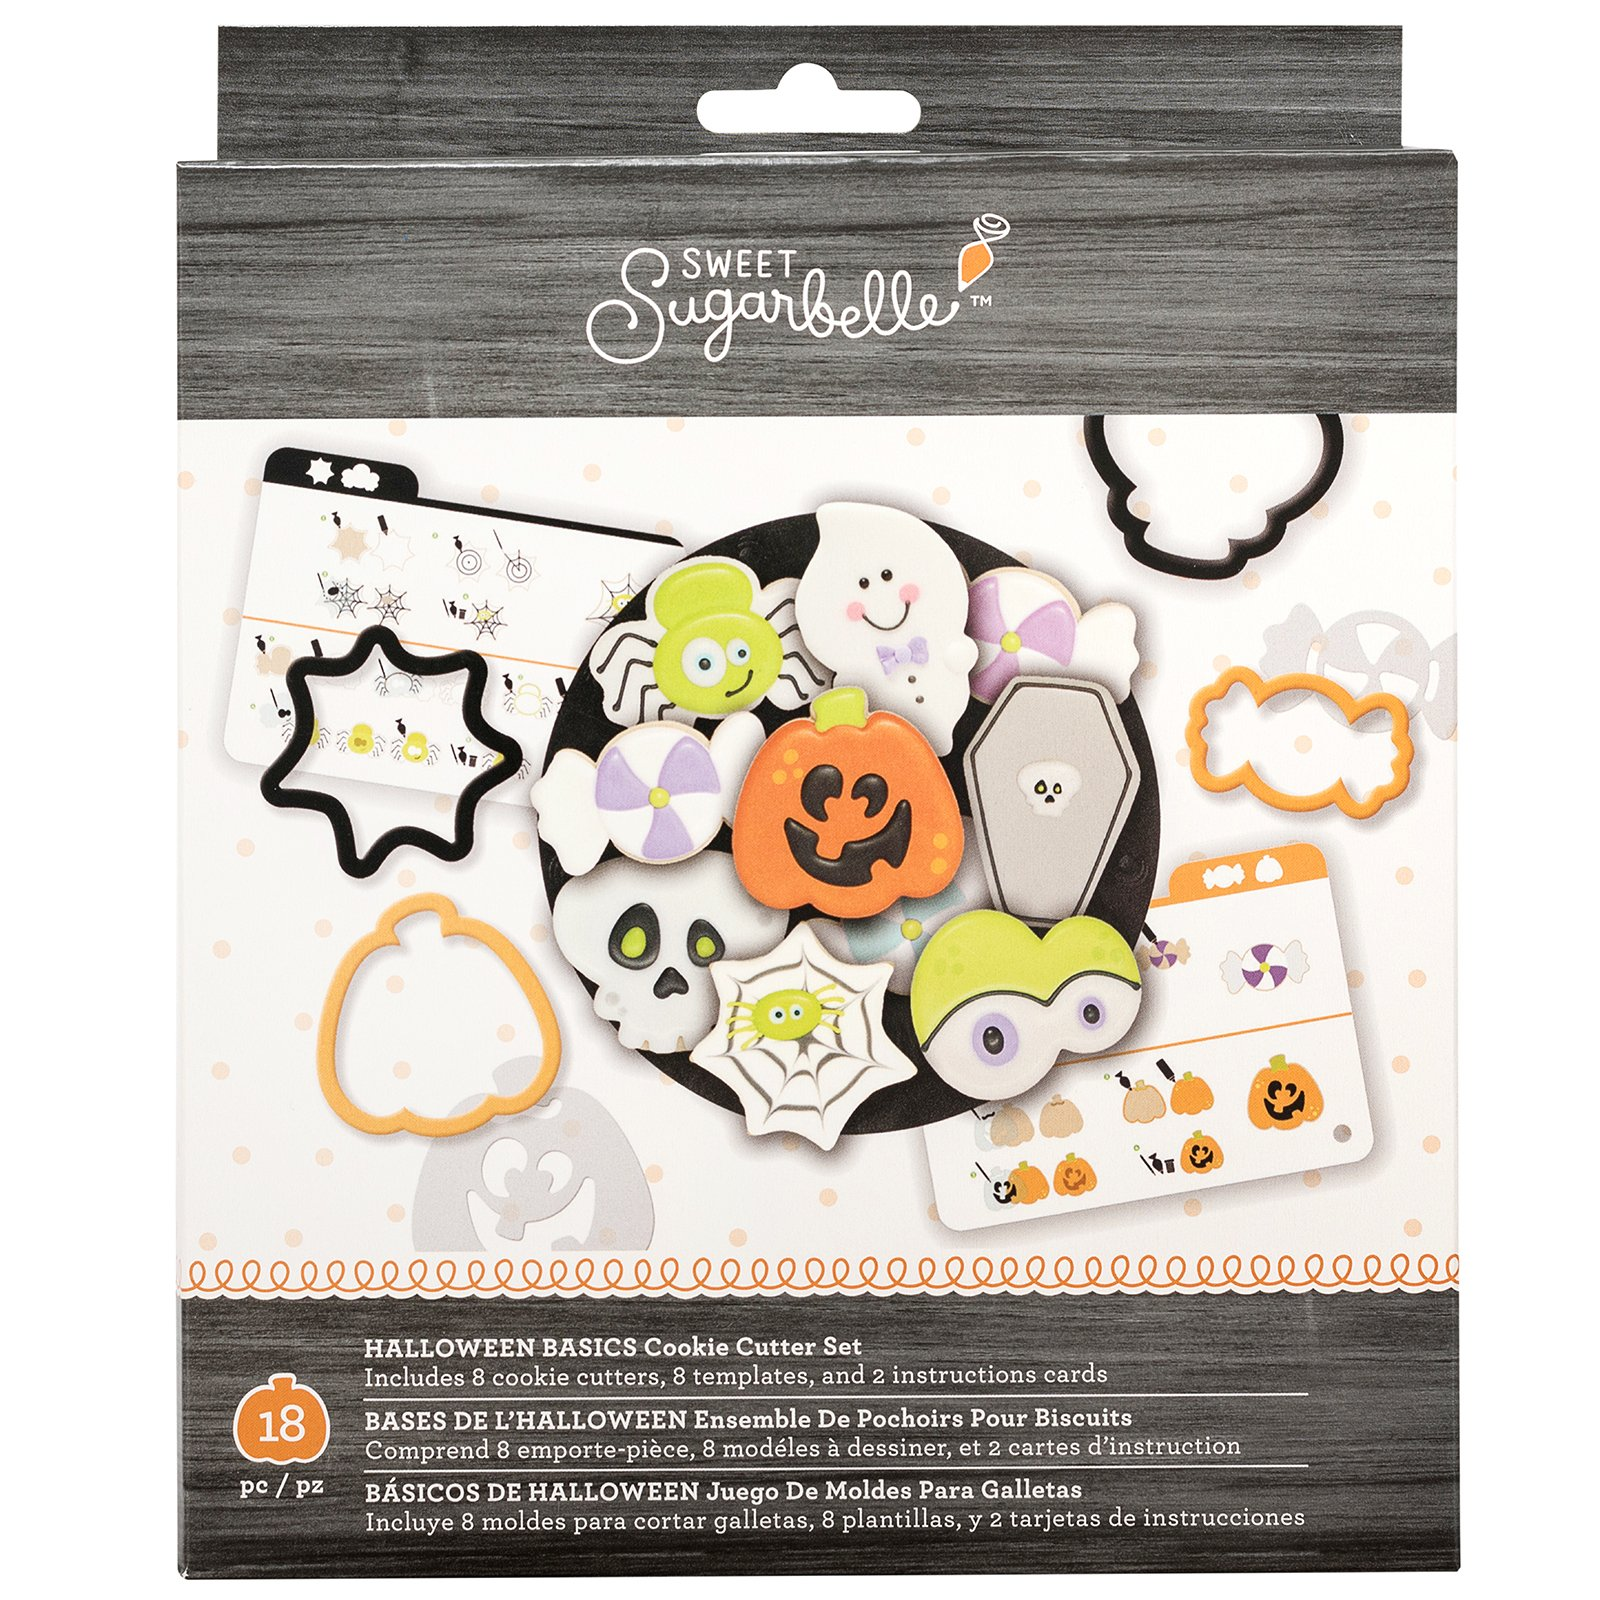 Sweet Sugarbelle 320119 Halloween Basics Cookie Cutters, Multi